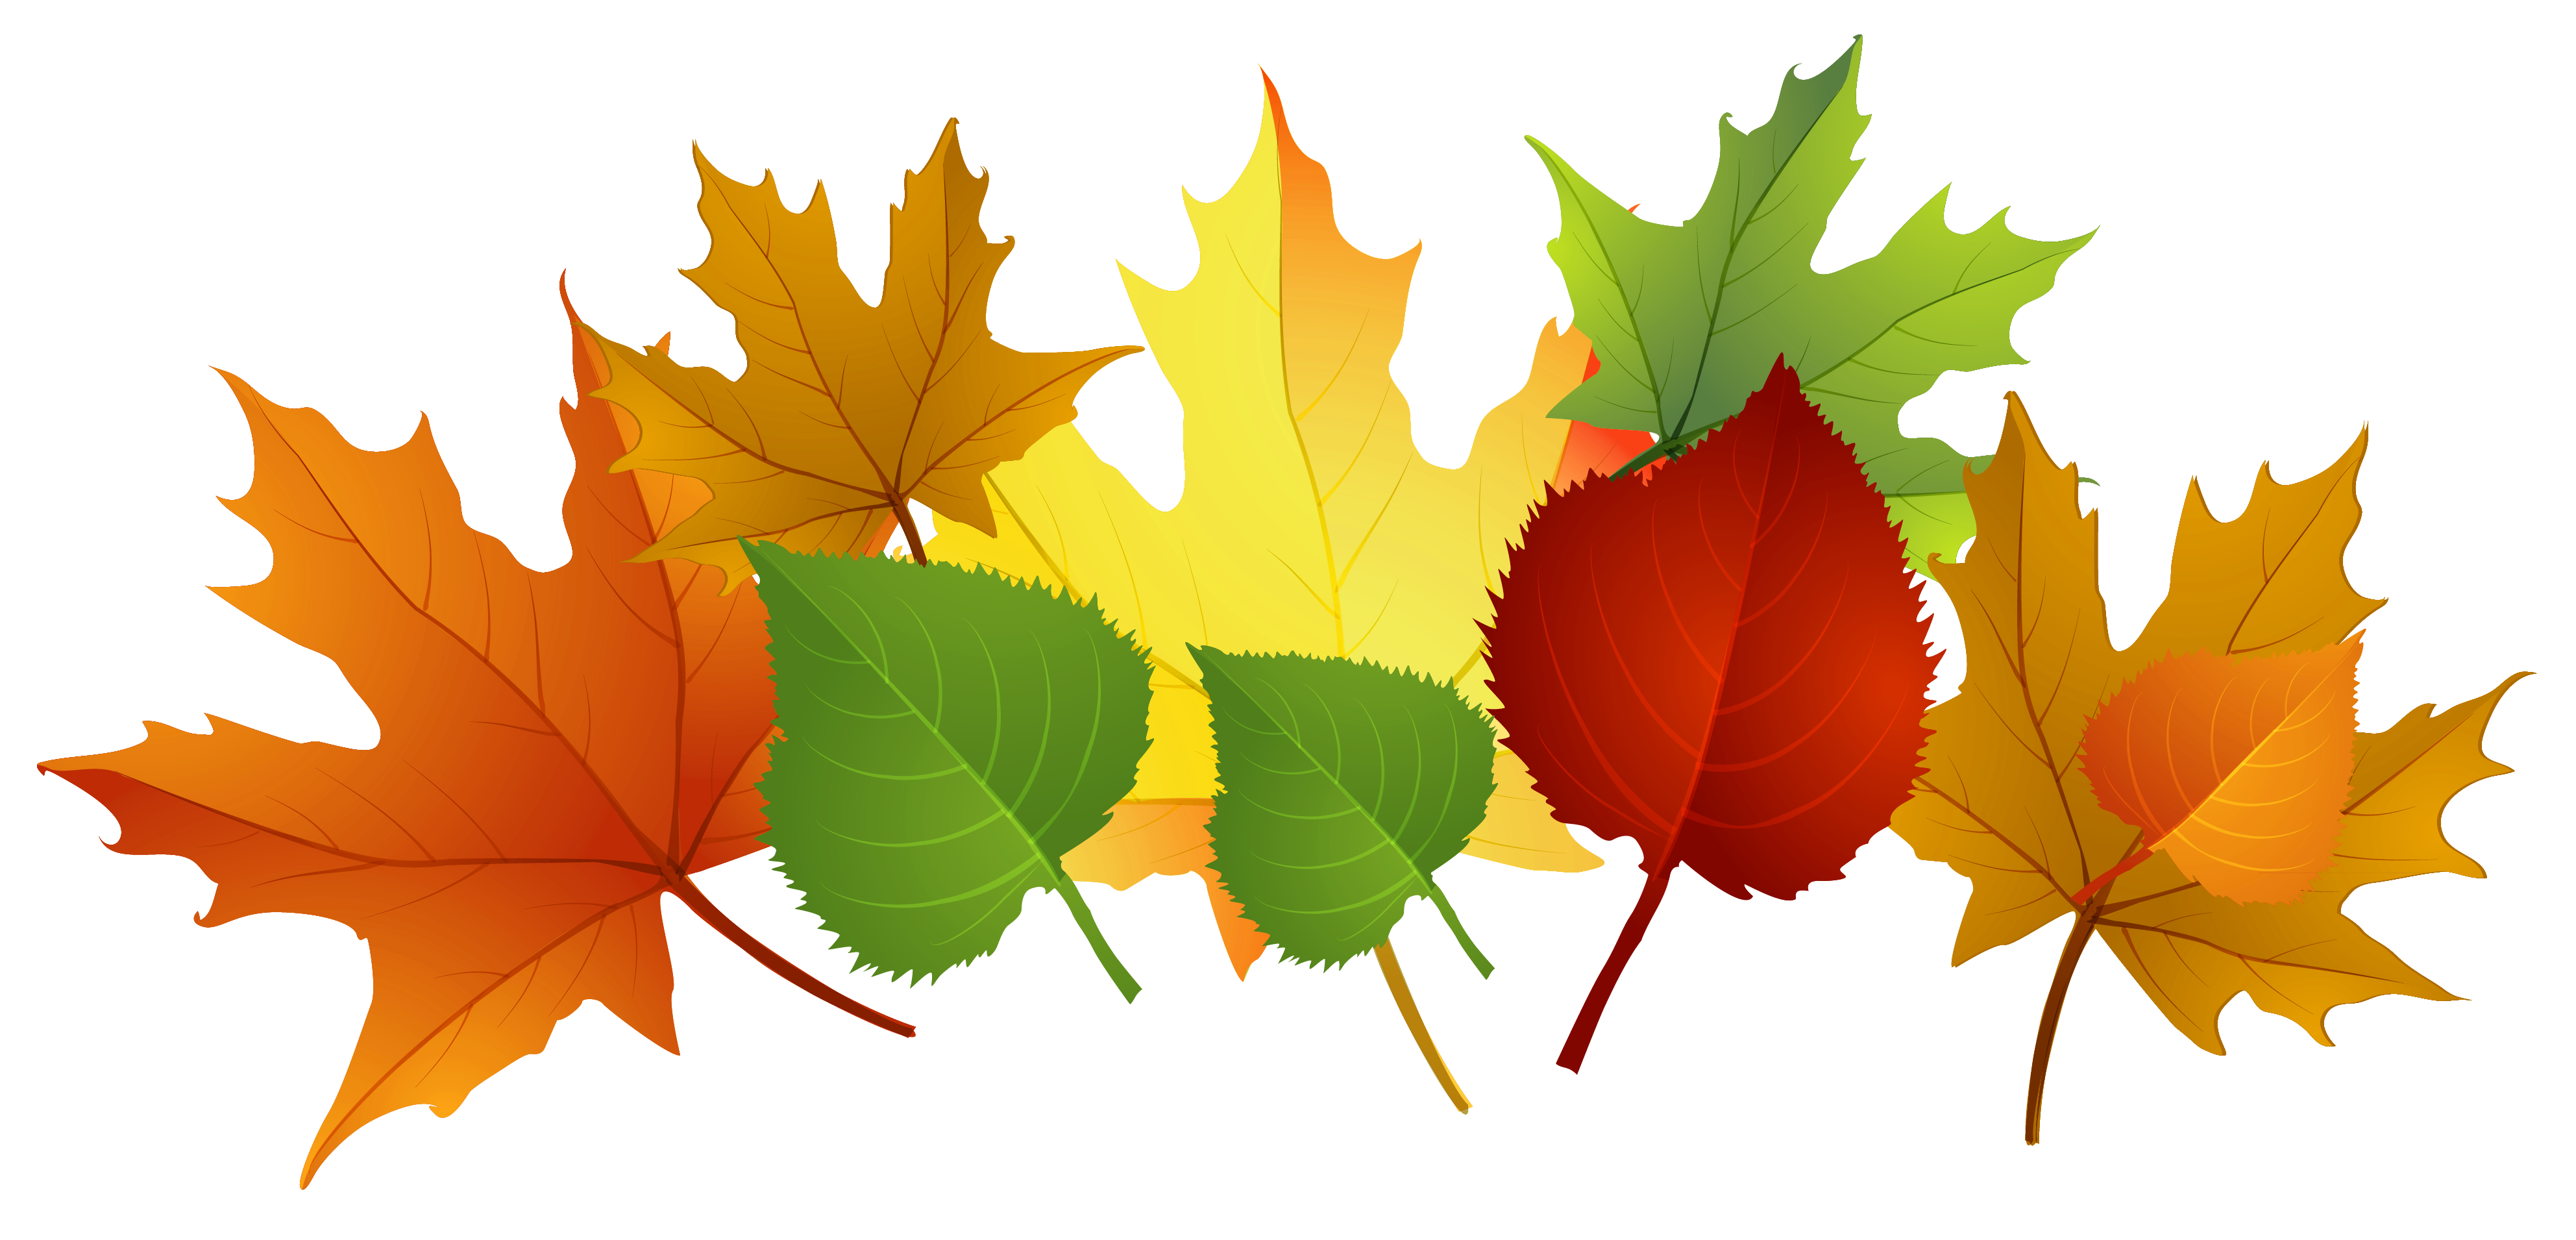 Fall Leaf Clip Art Free Cliparts That Yo-Fall Leaf Clip Art Free Cliparts That You Can Download To You-3